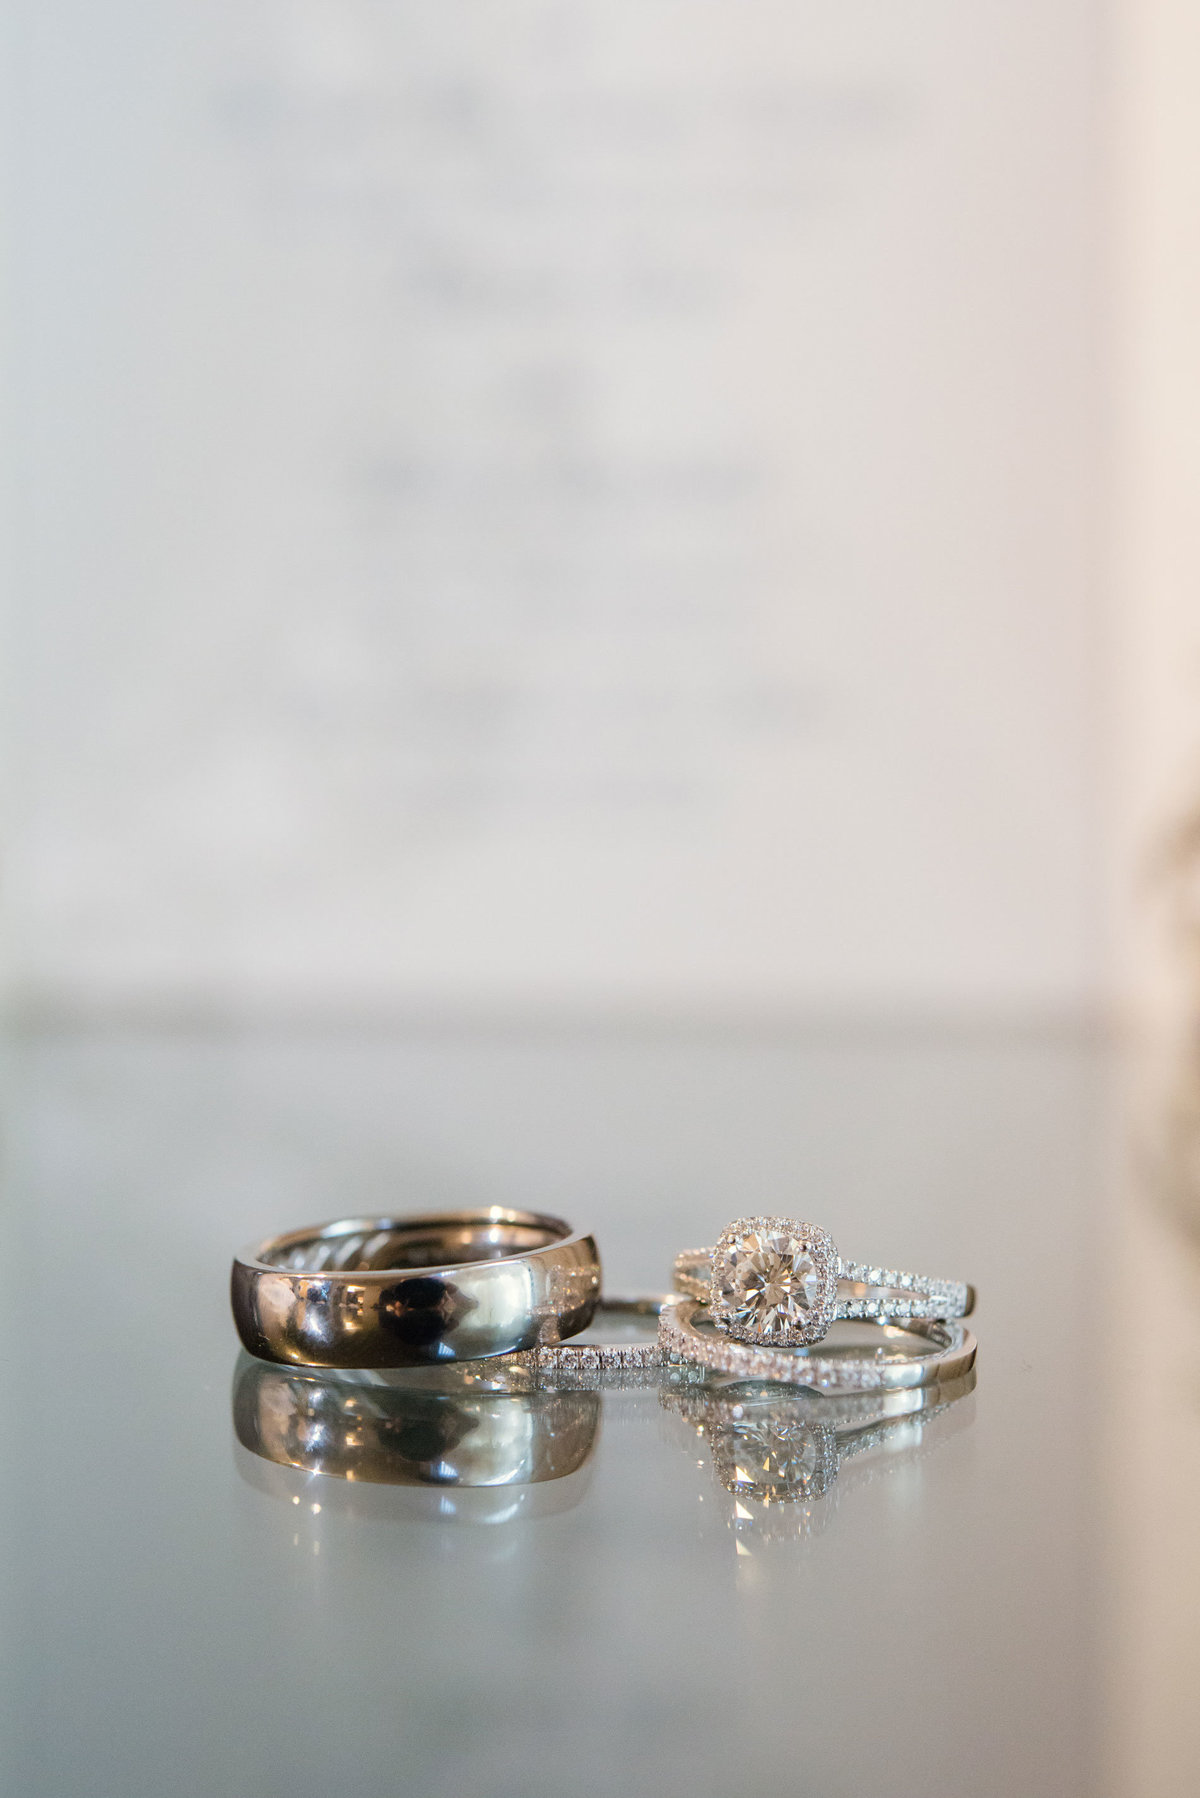 Wedding bands and engagement ring at The Inn at Fox Hollow